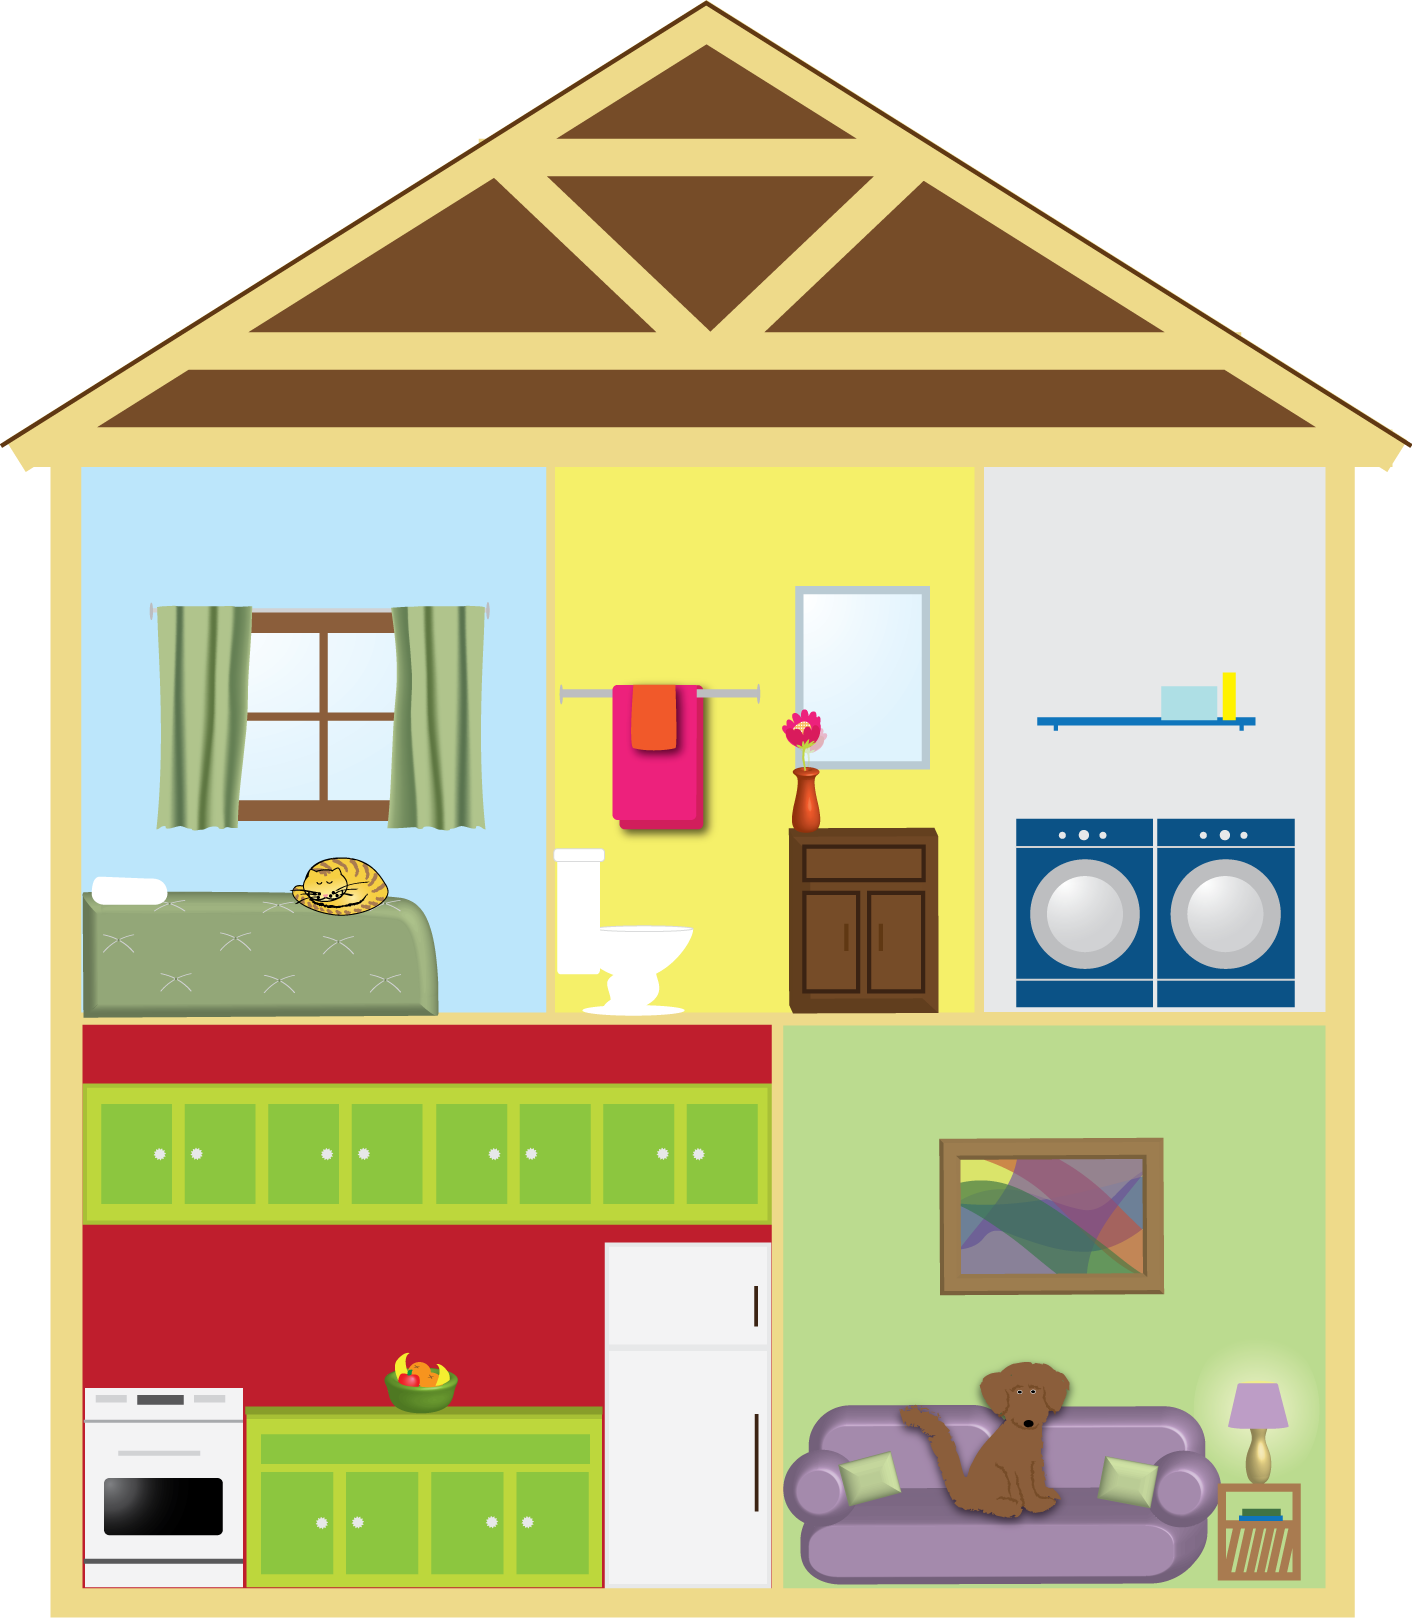 Home clipart country home. Scintillating simplicity photo credit